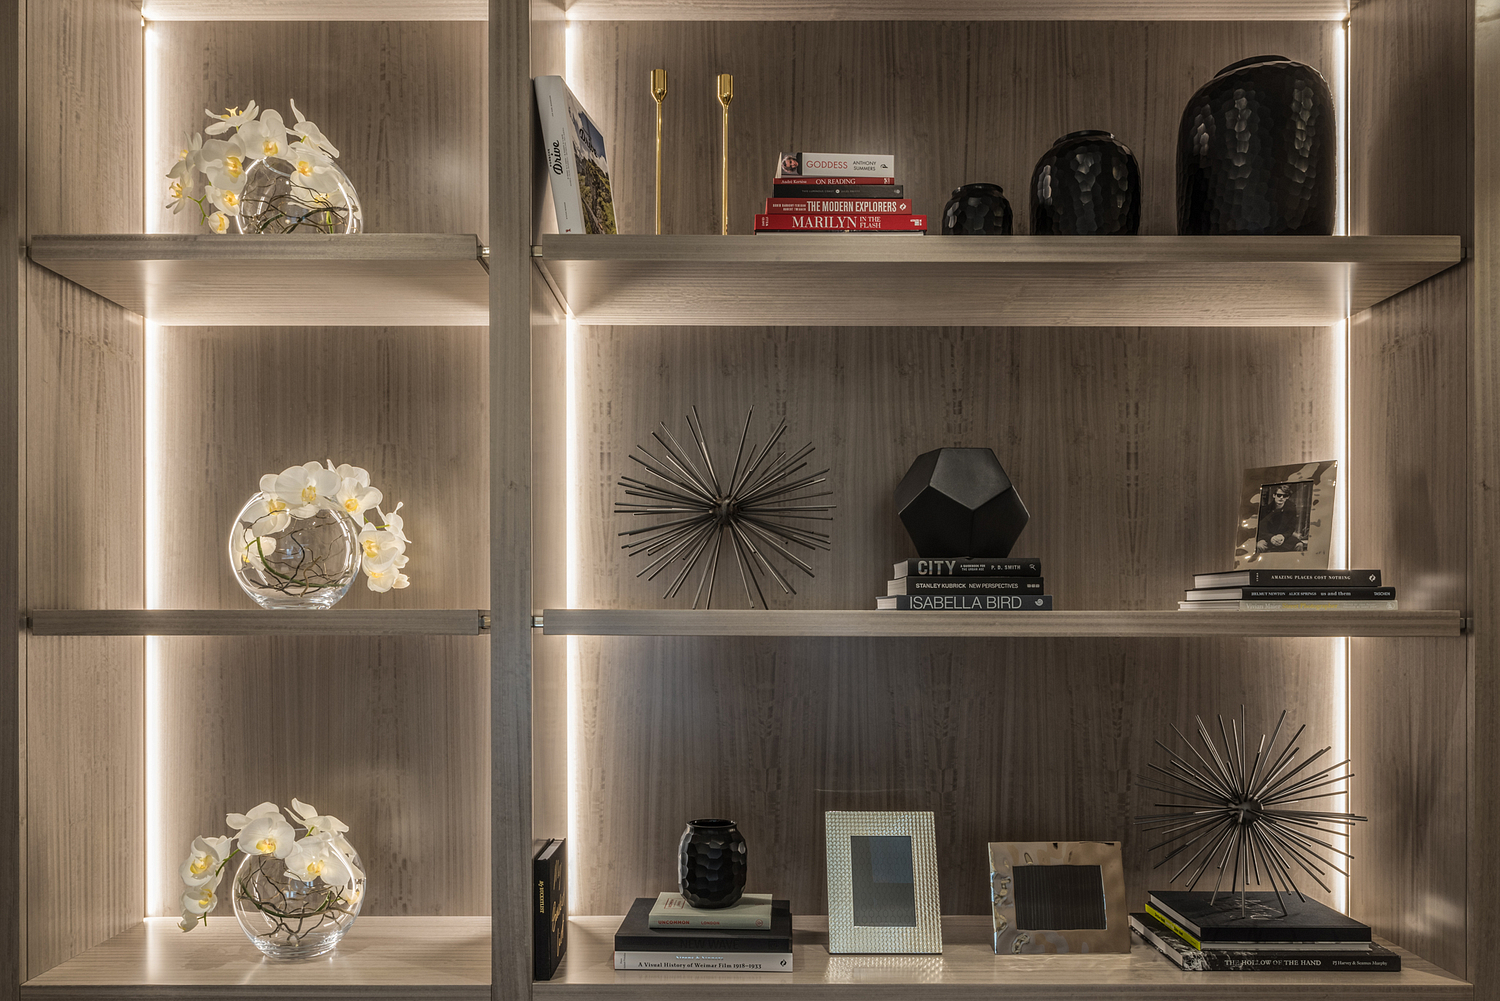 Home office shelving detail, London